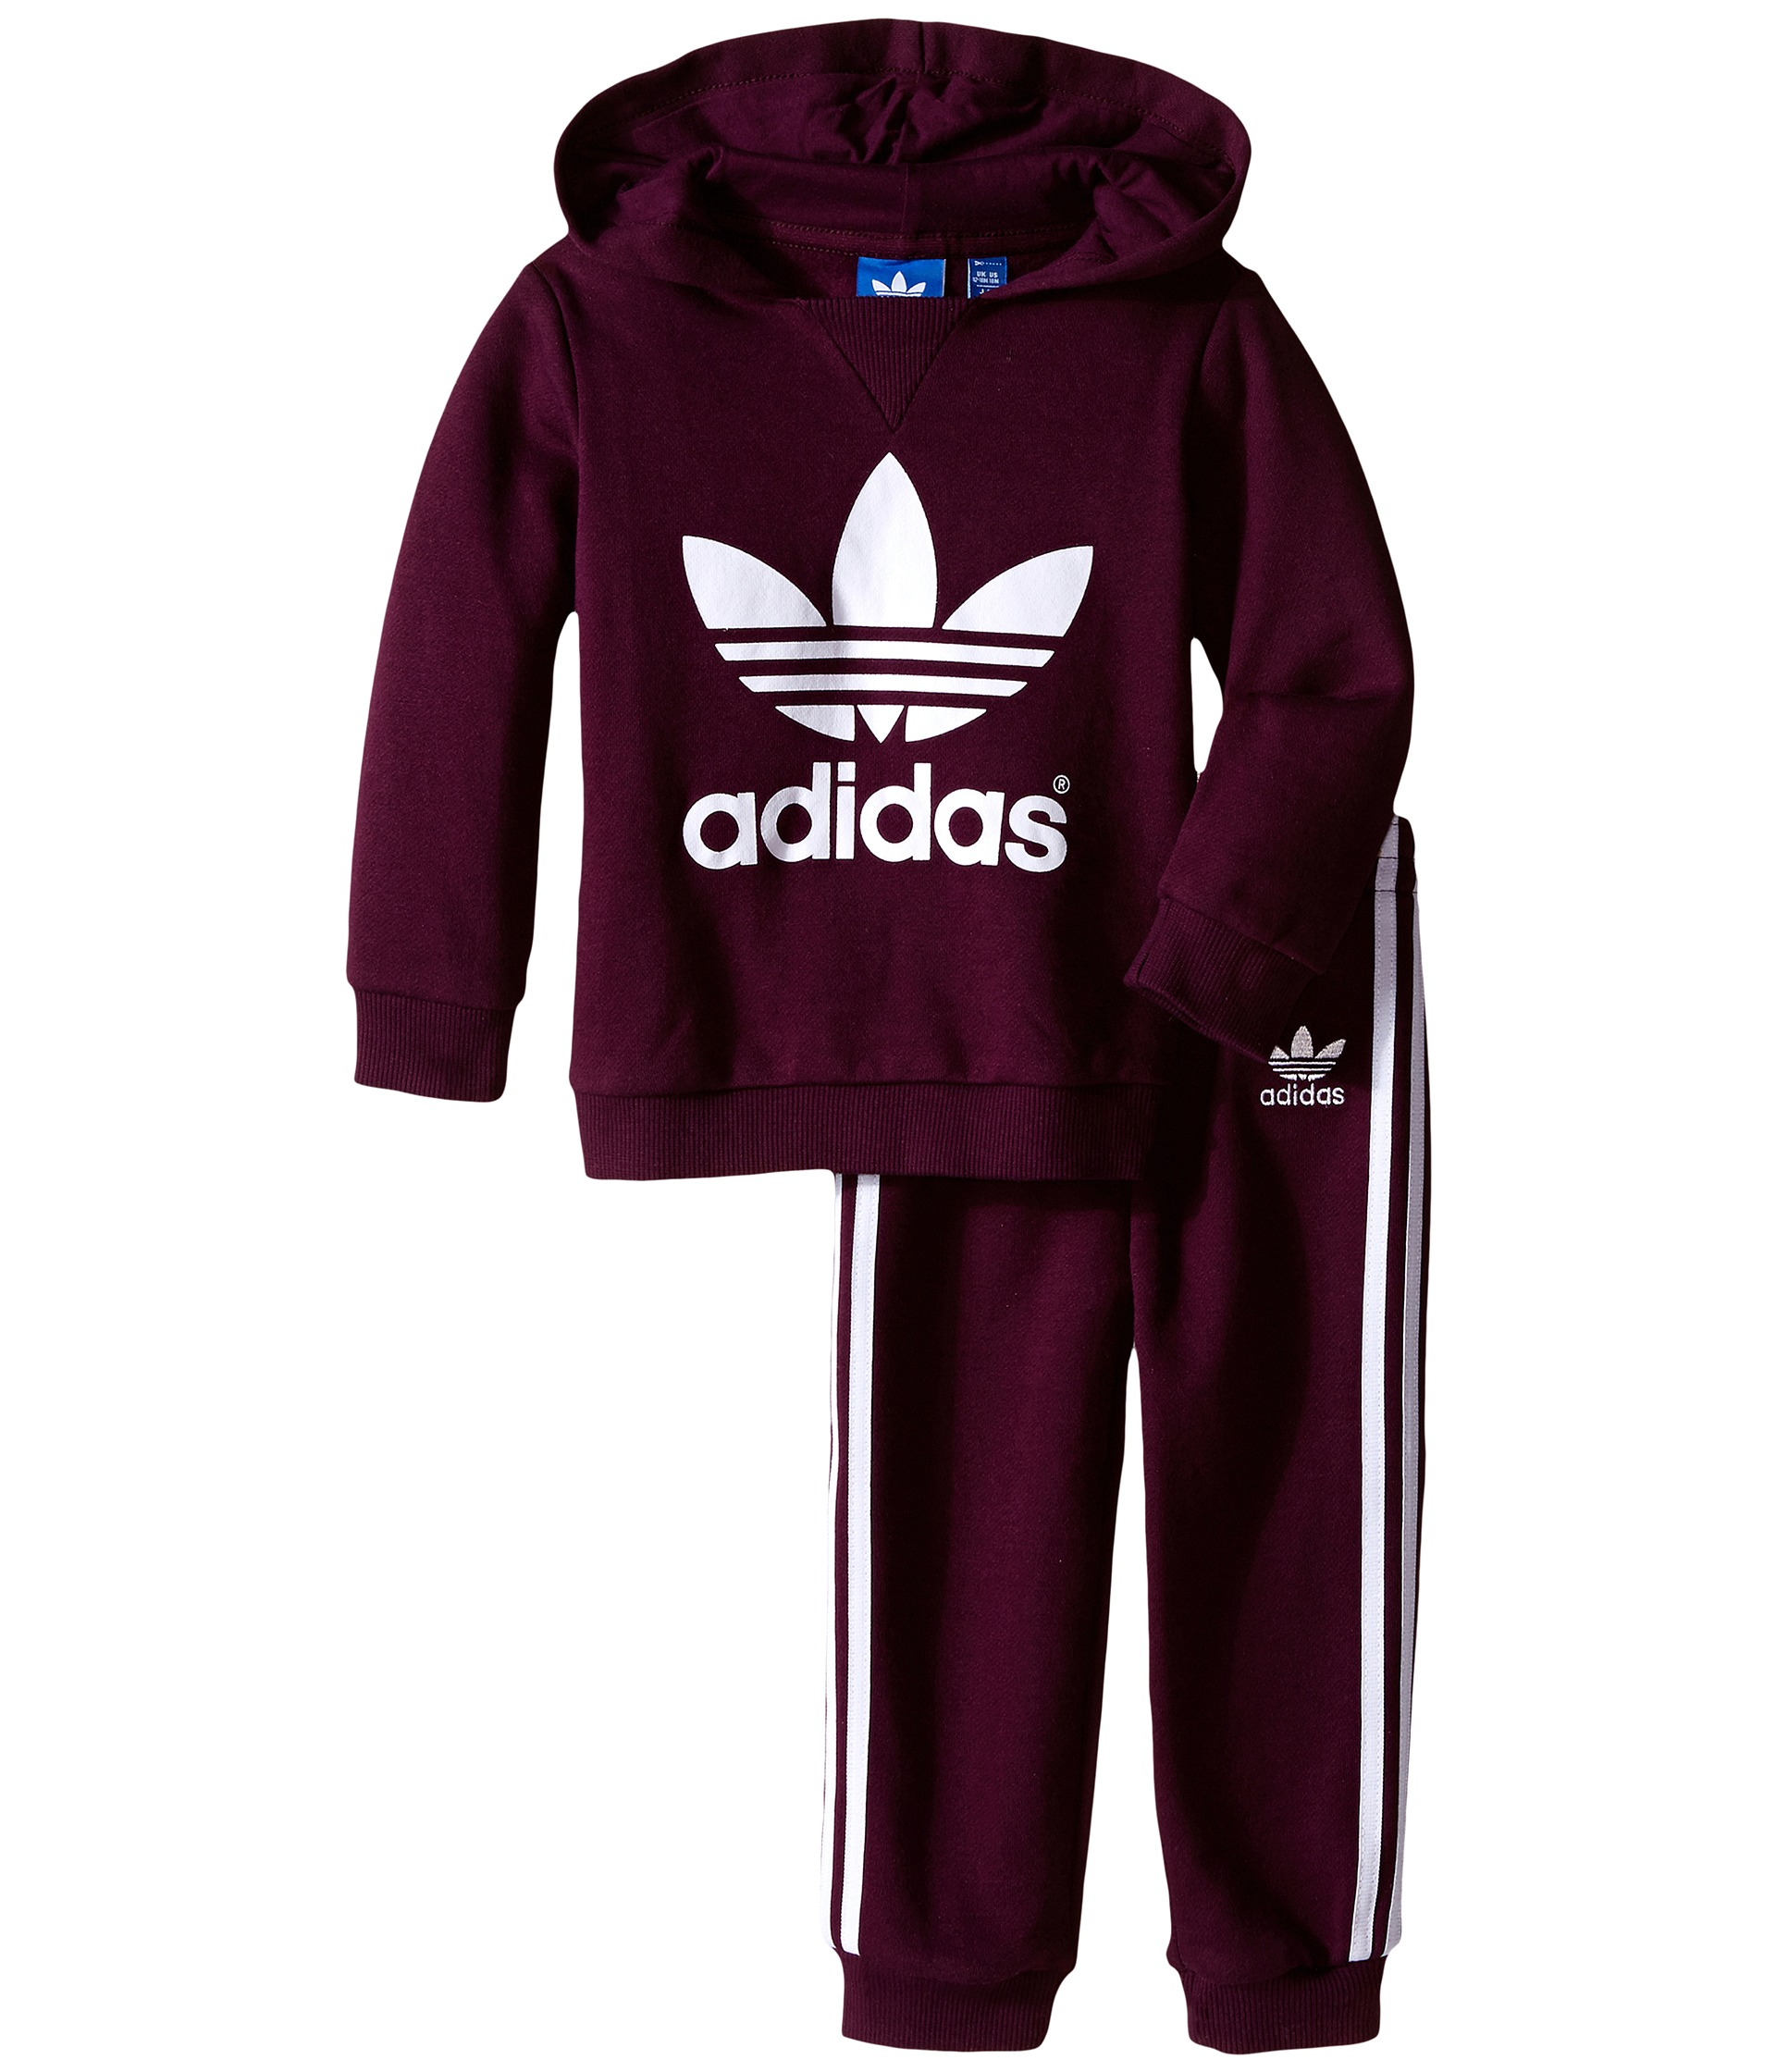 Adidas Originals Kids Trefoil Set (Infant/Toddler) - Zappos.com Free Shipping BOTH Ways